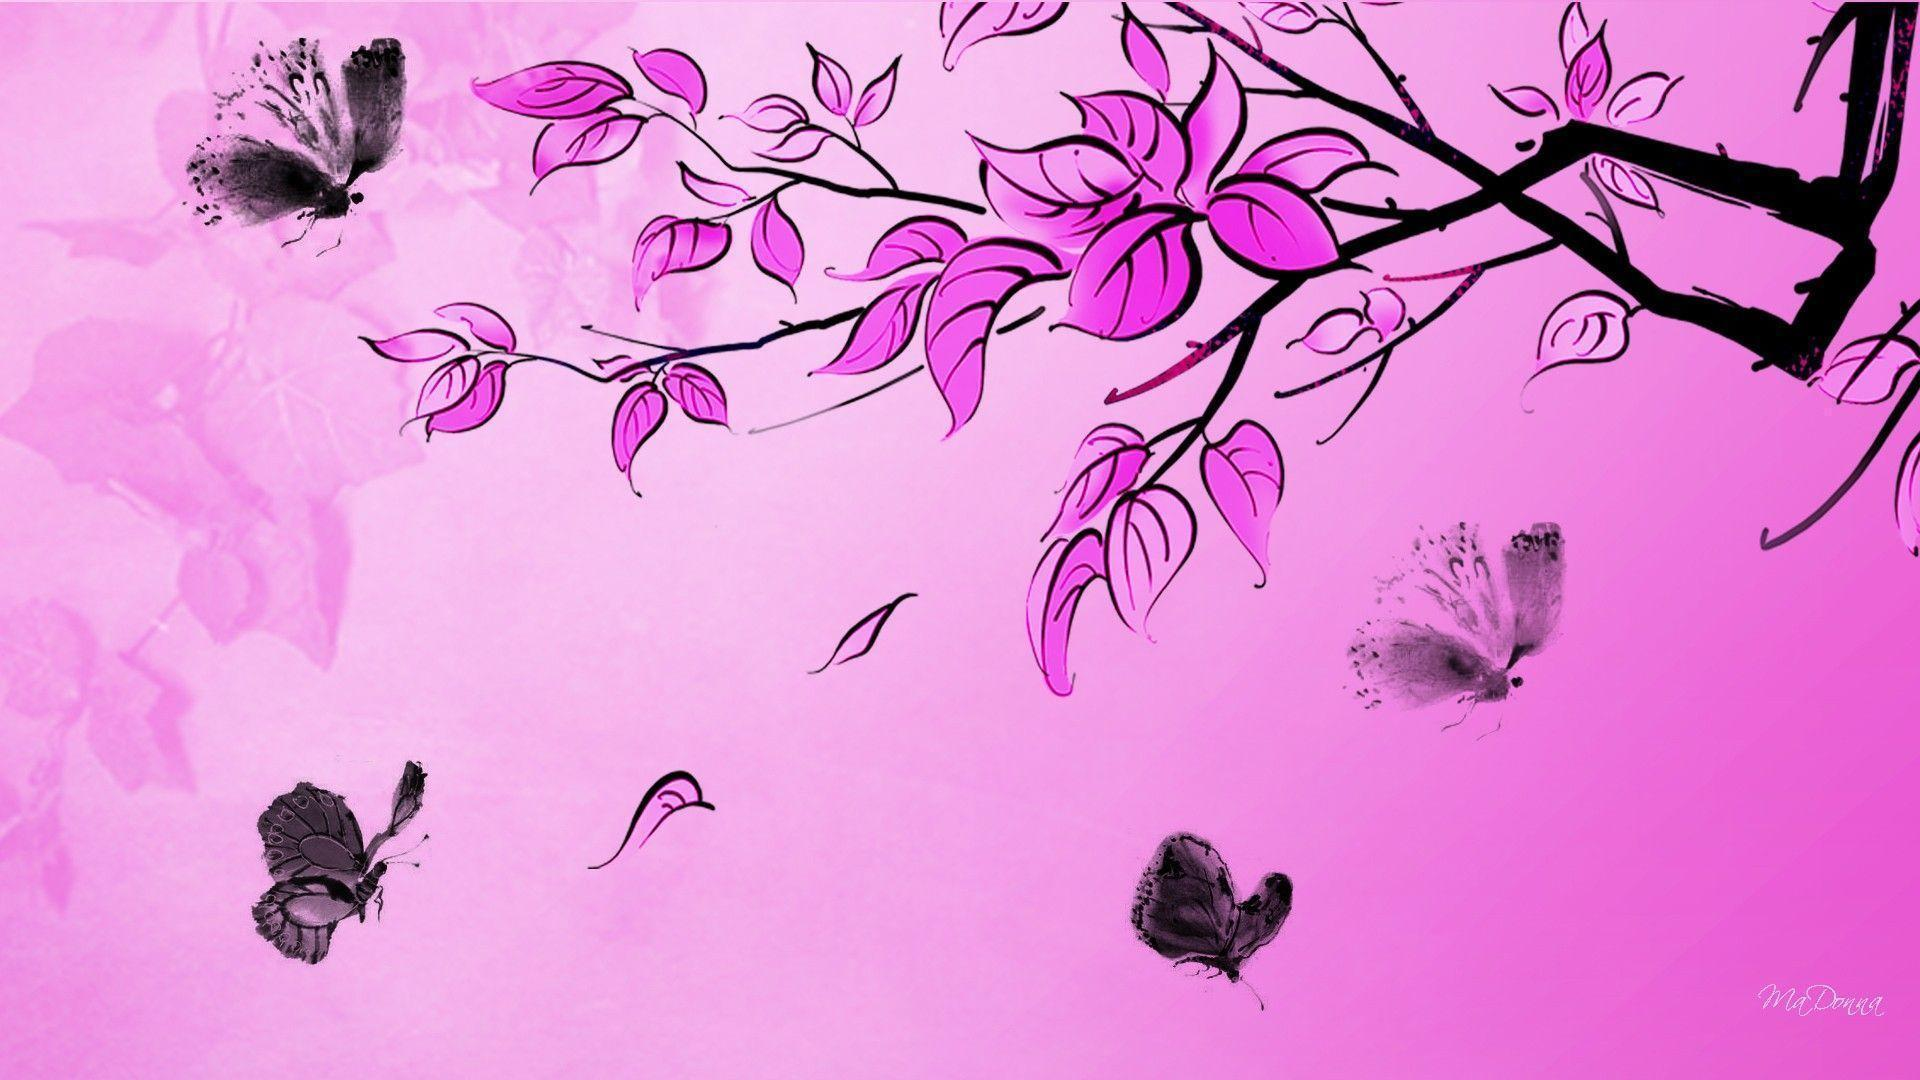 Wallpapers For Hot Pink And Black Butterfly Wallpaper